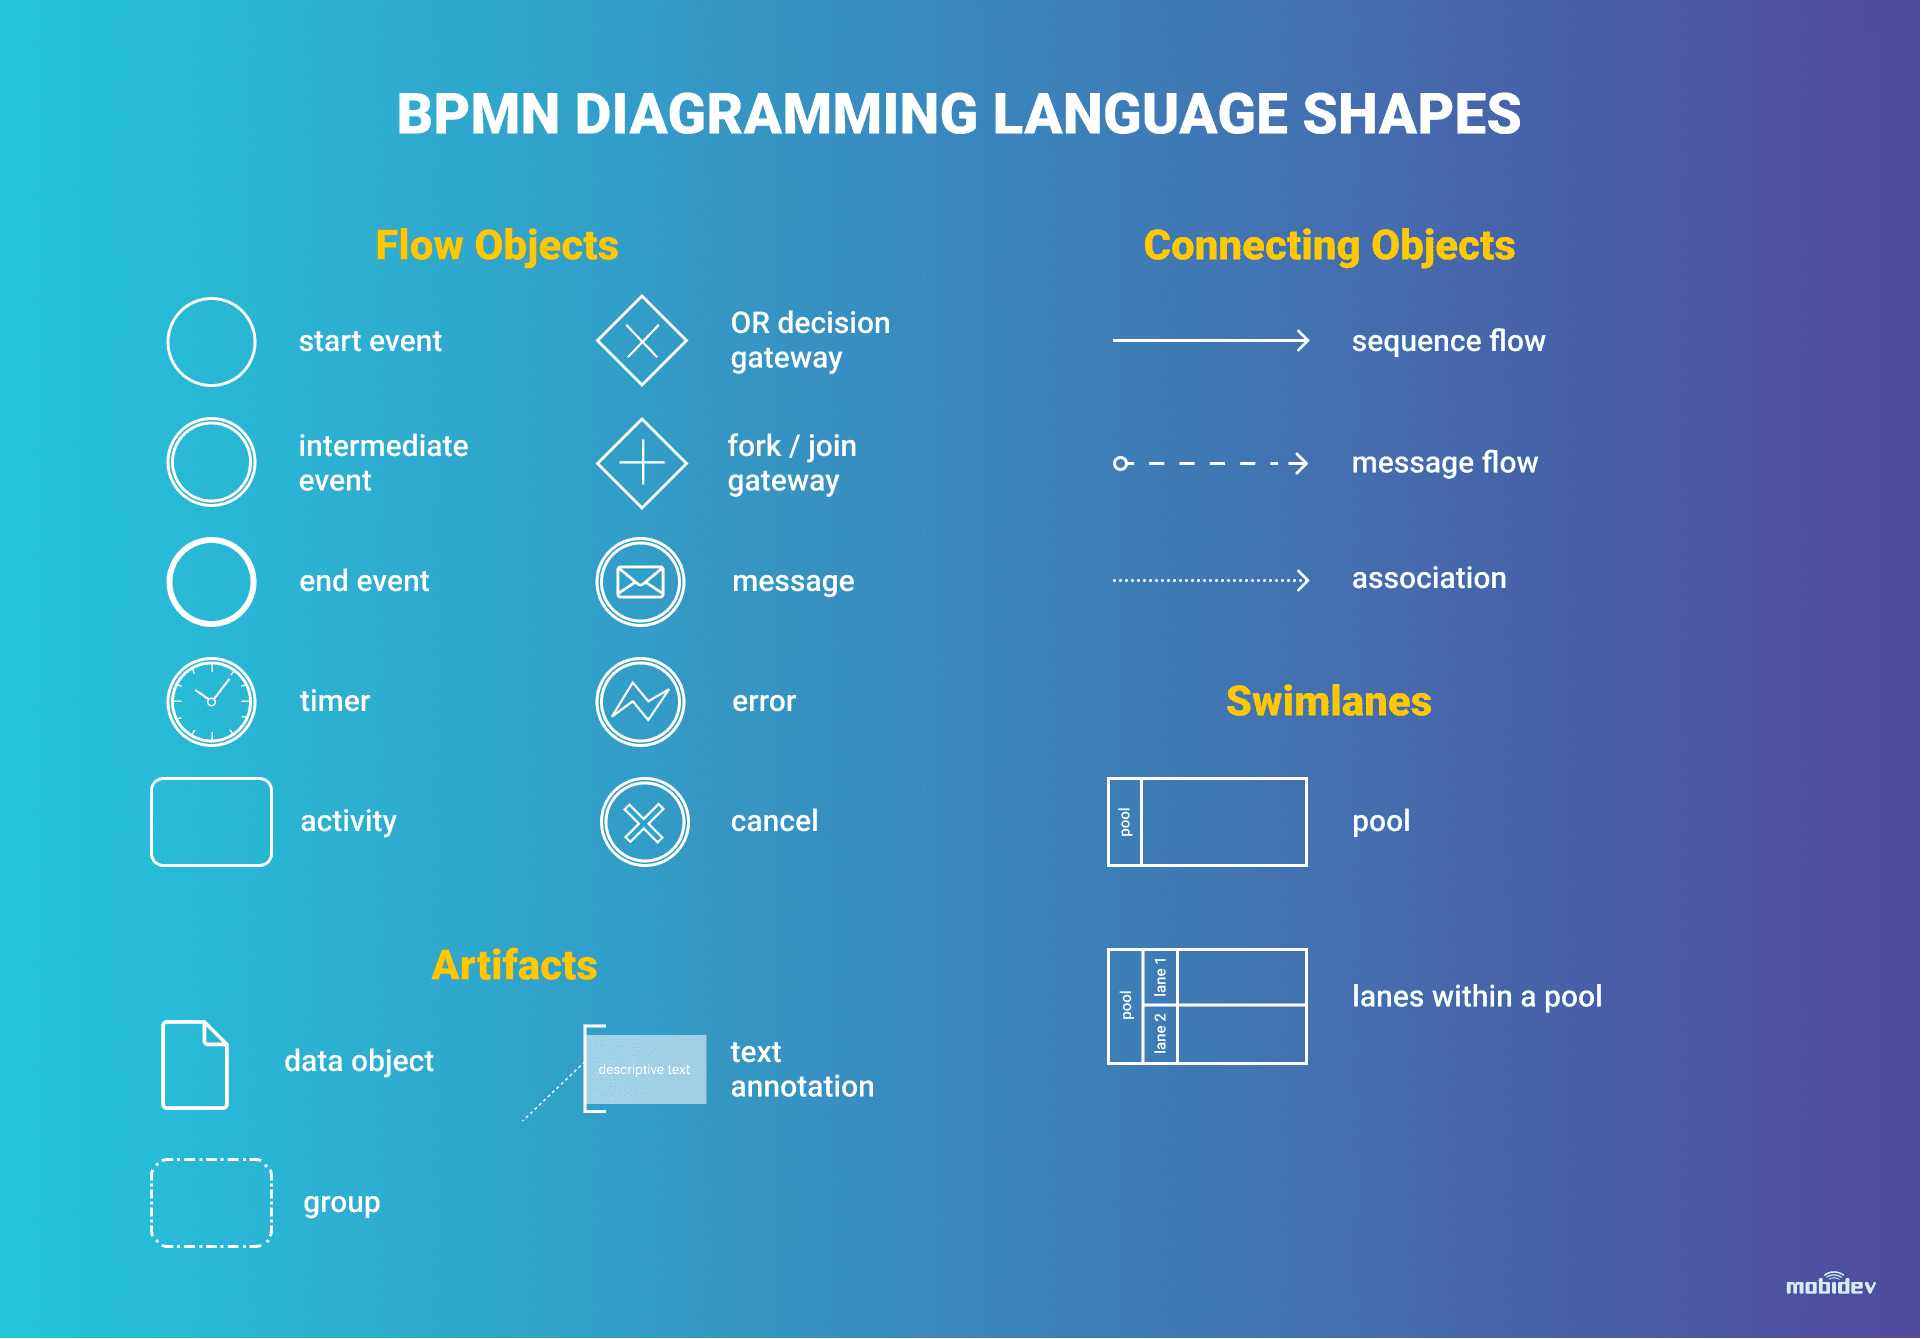 BPMN Language Shapes for Business Analyst